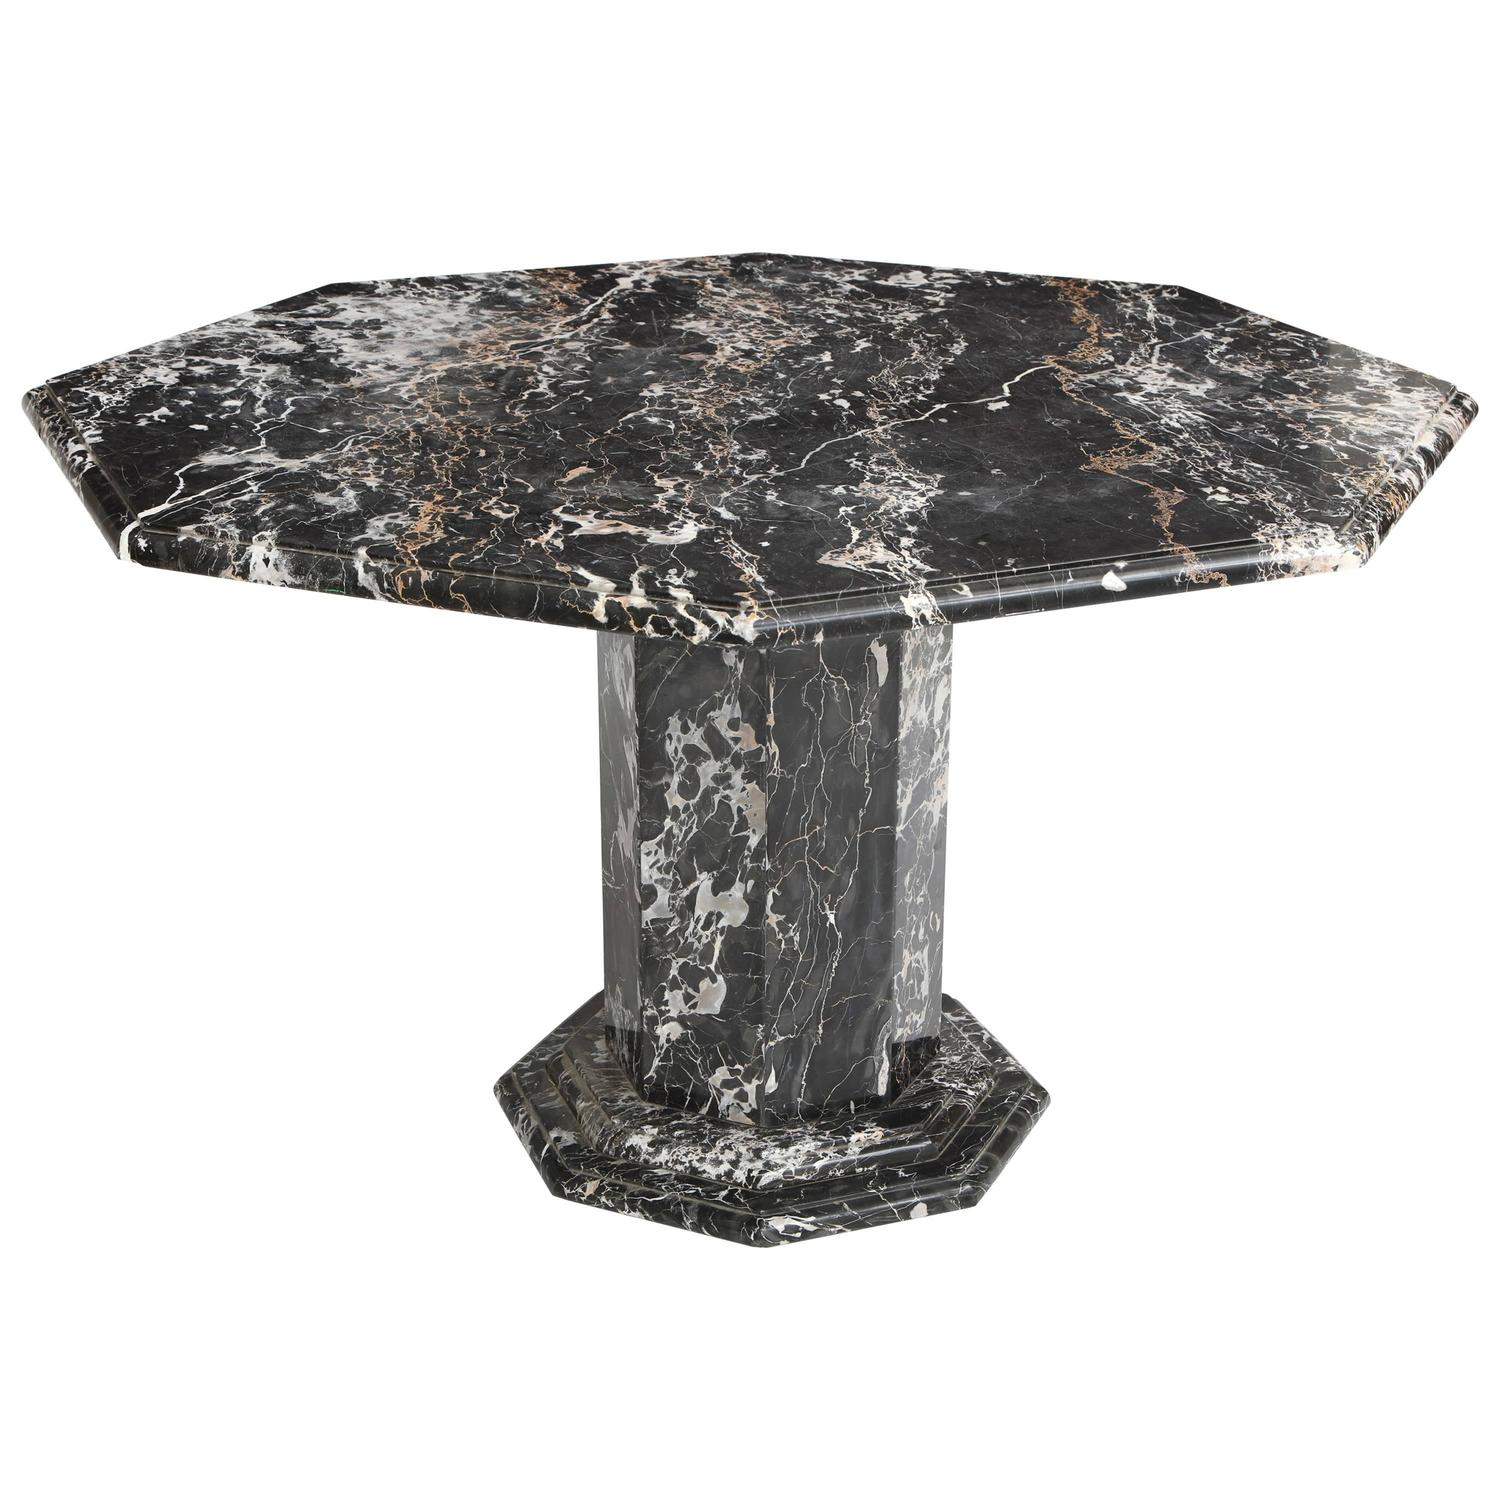 Marble Dining Room Tables 287 For Sale at 1stdibs